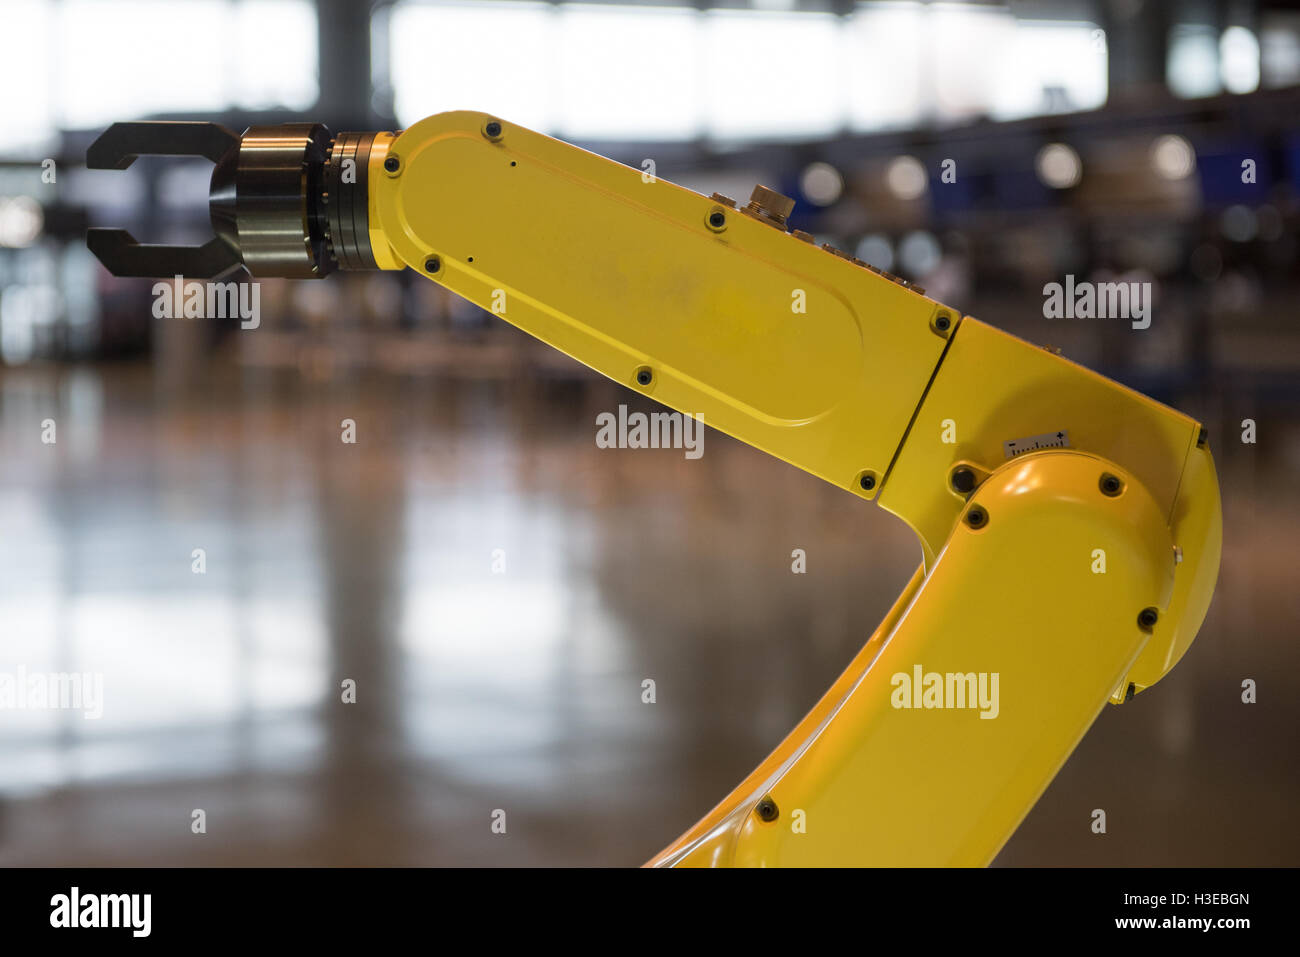 A yellow robotic arm isolated on a blurry background - Stock Image